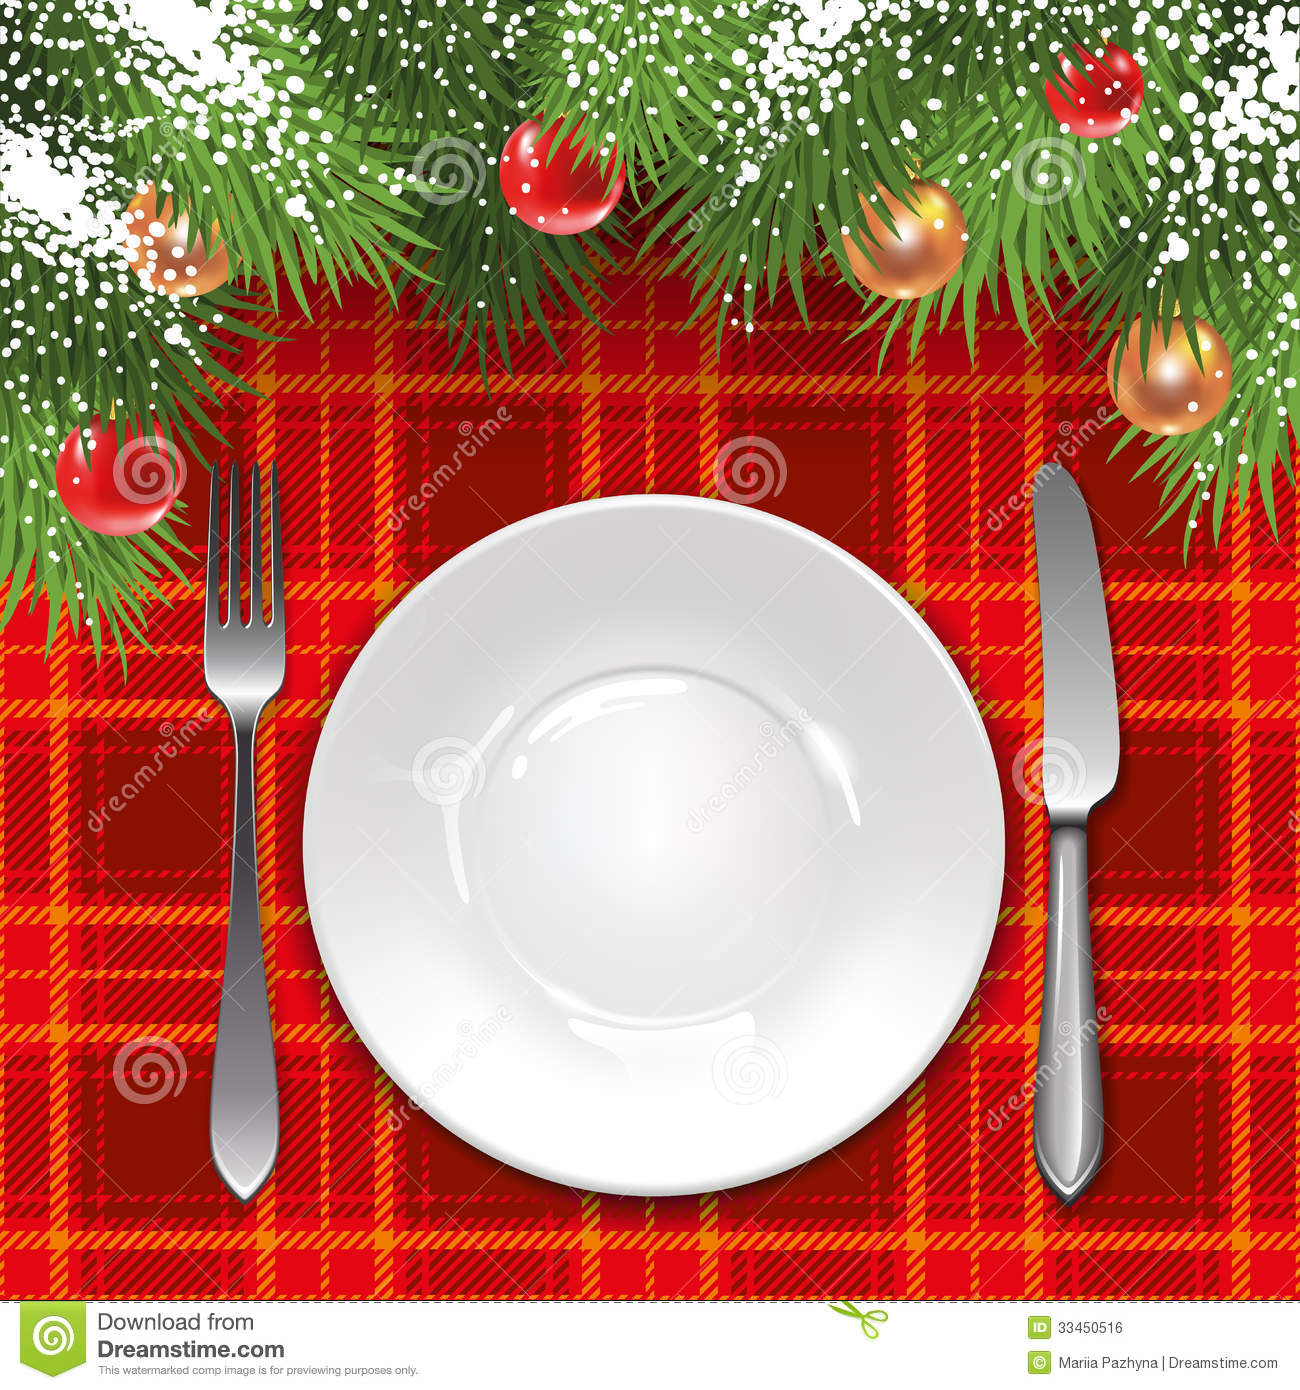 Christmas menu template with holiday decorations and tartan tablecloth ...